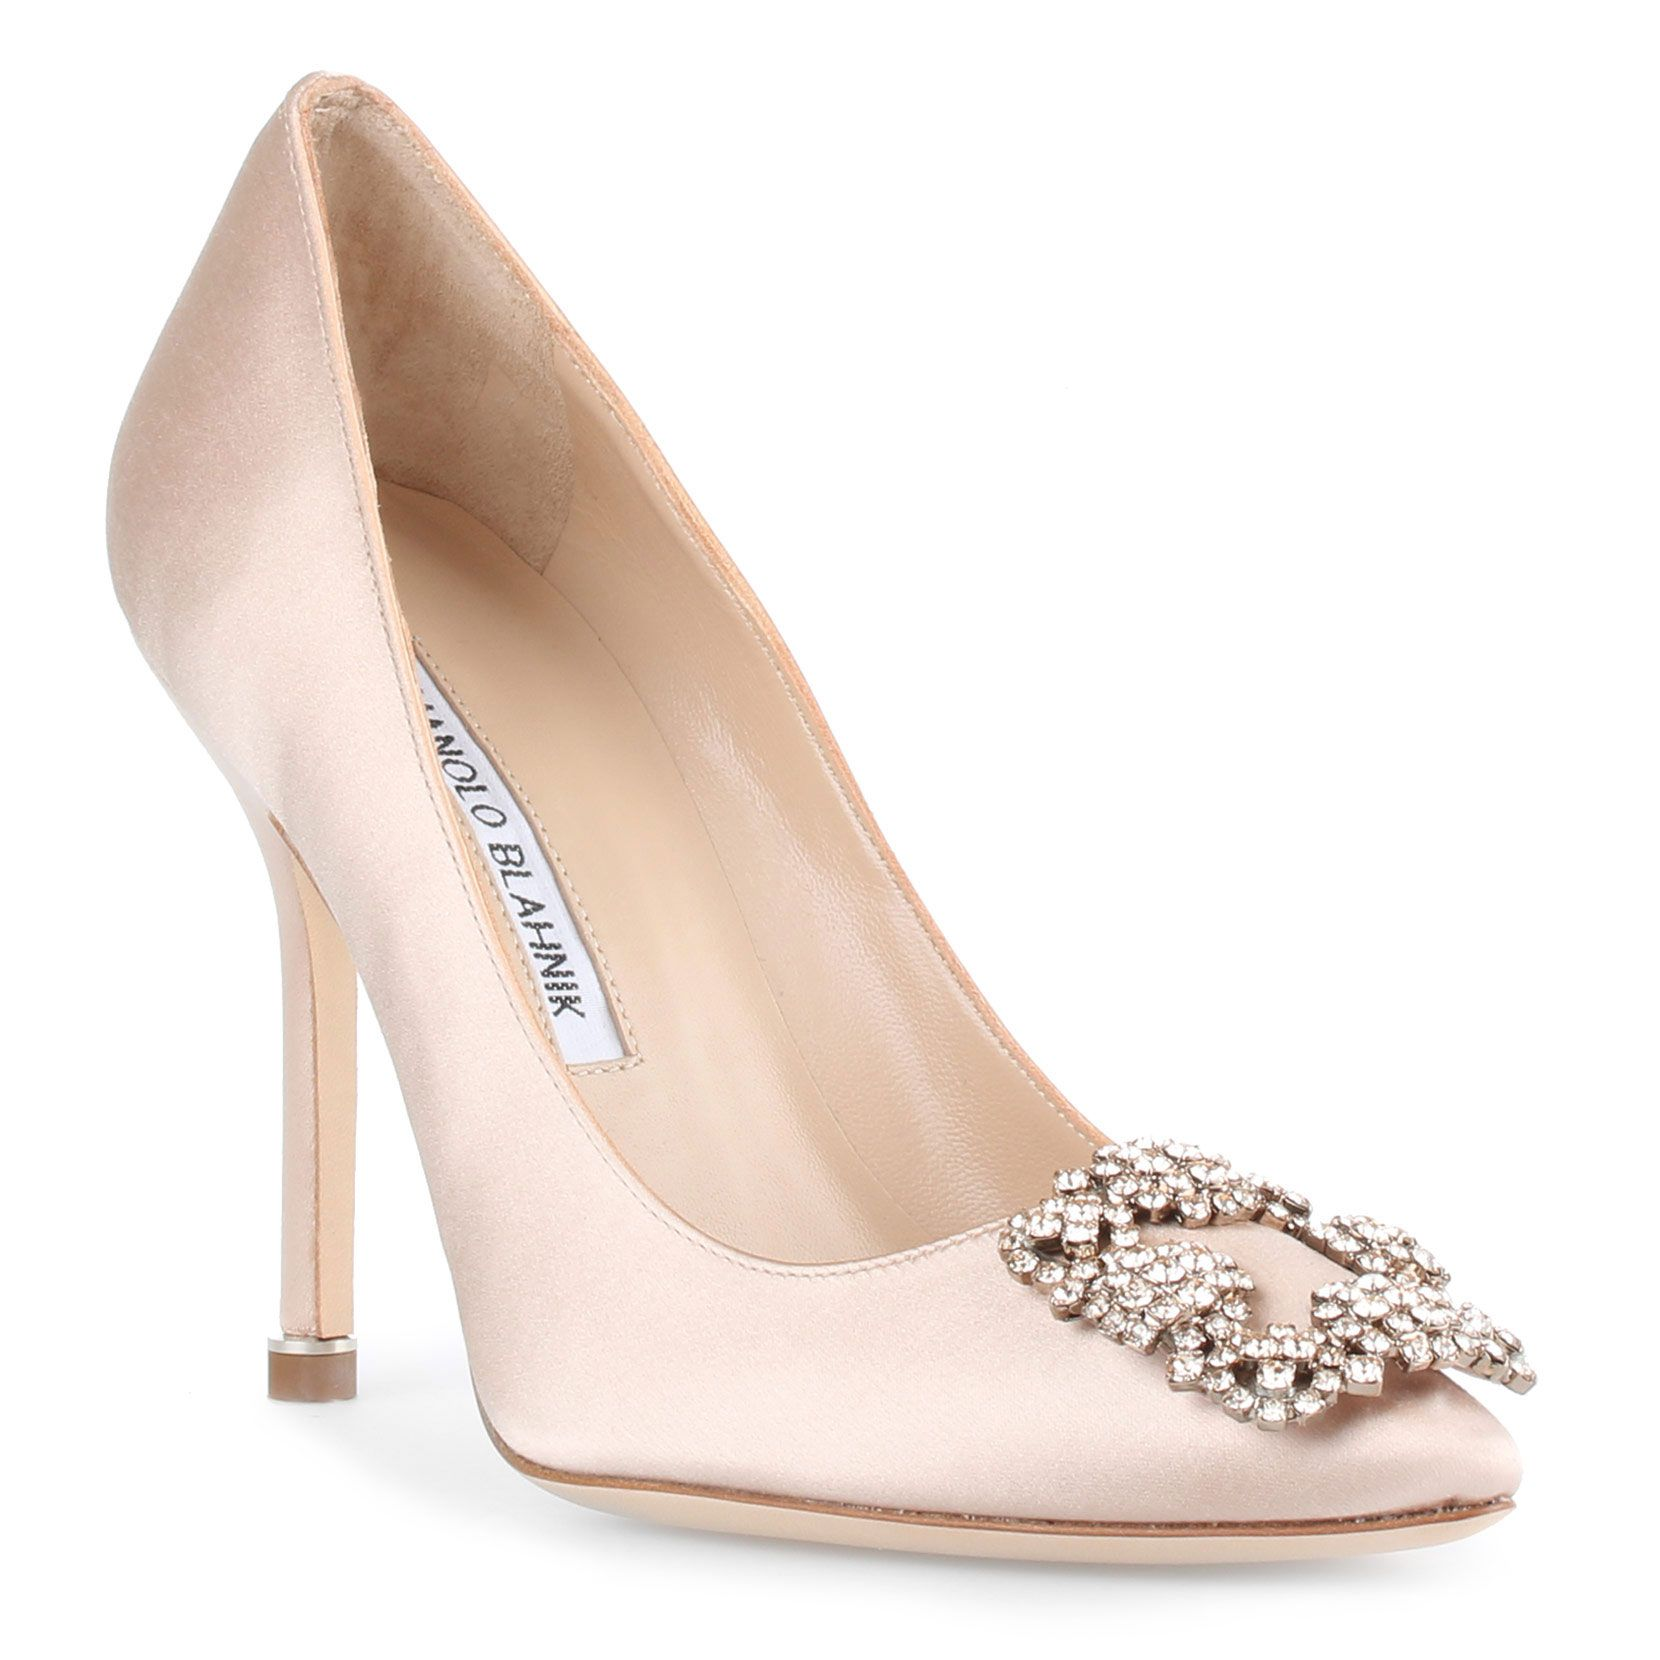 1db60e62fa Gianvito Rossi Mesh & Crystal Point-Toe Pumps   Fashion   Pointed toe pumps,  Shoes, Embellished shoes